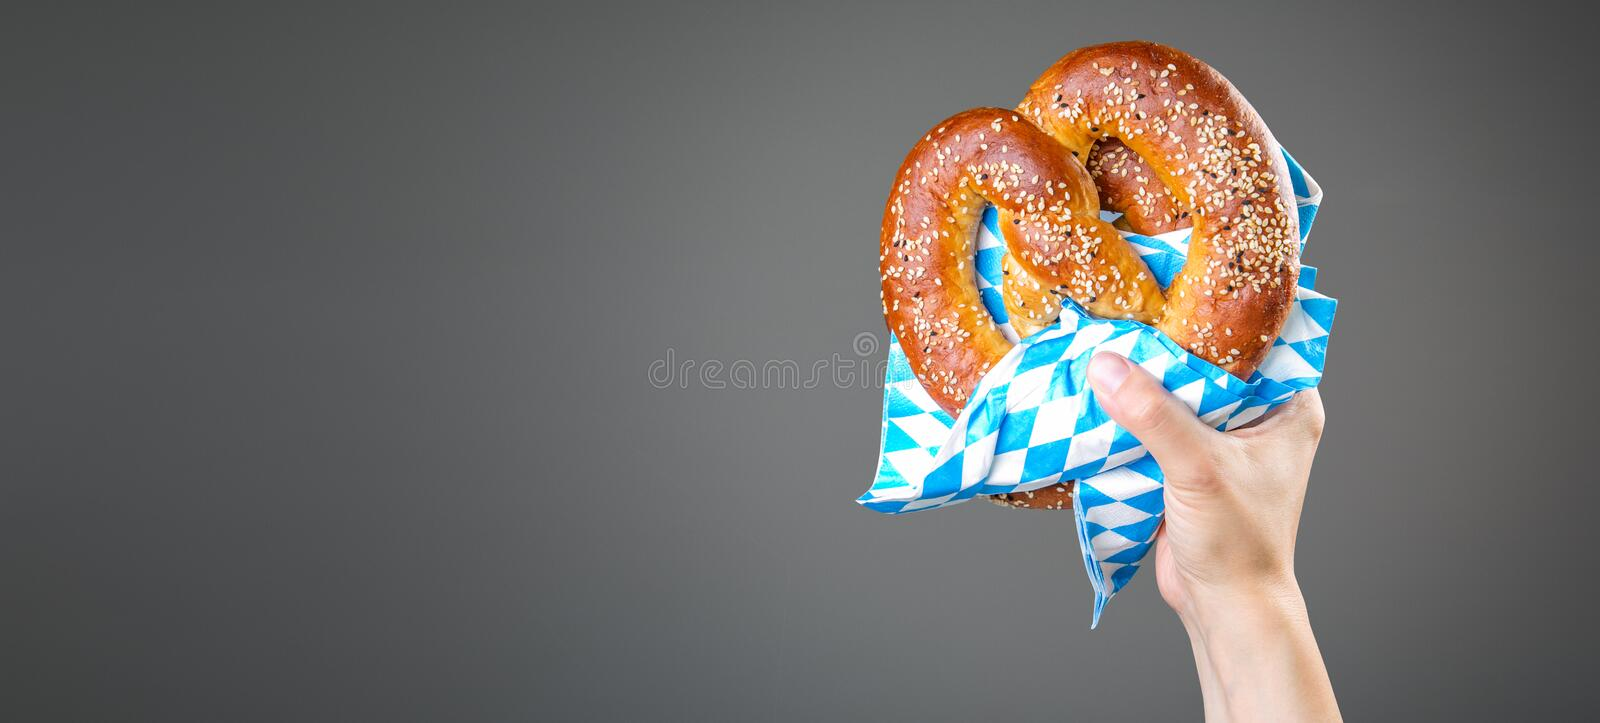 Oktoberfest concept - hands holding beer and pretzel royalty free stock photos